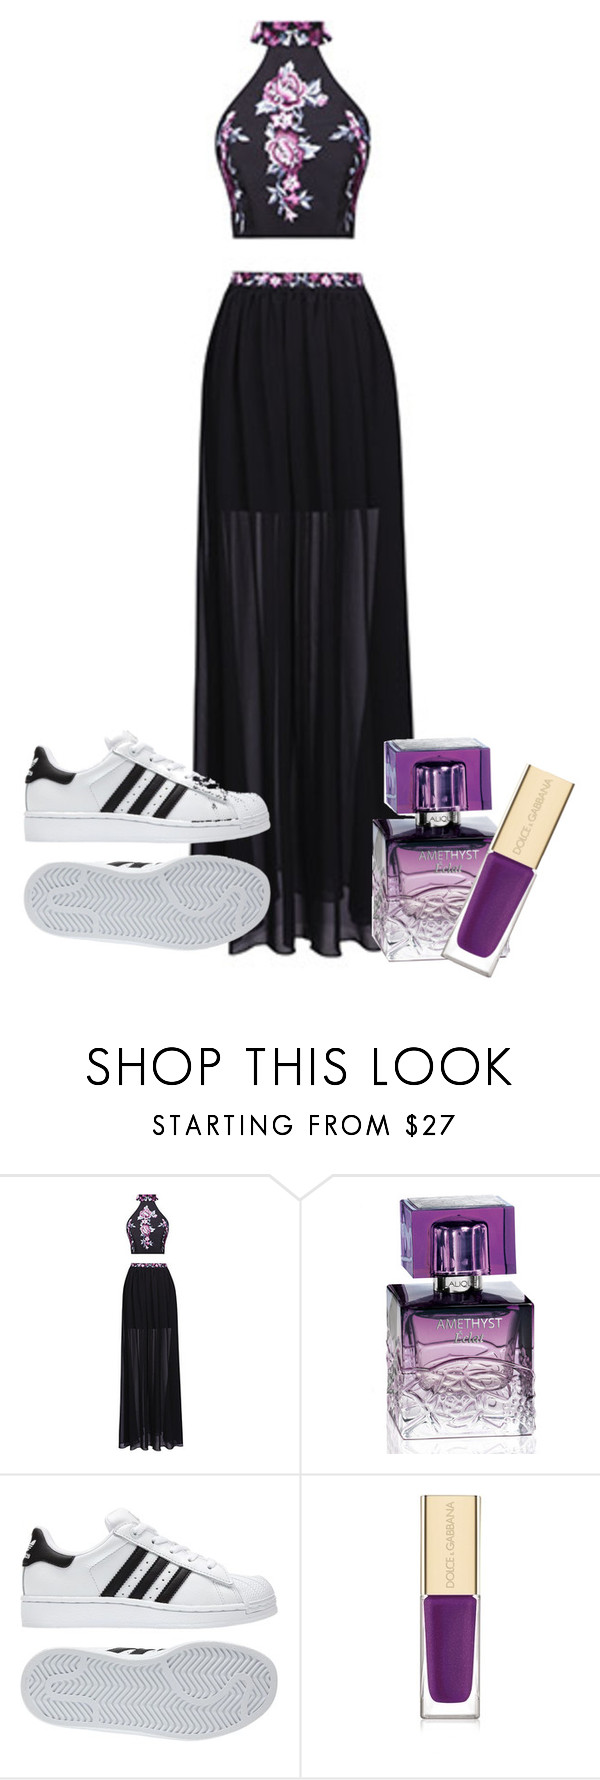 Geen titel #98 by ebru-polat-1 on Polyvore featuring mode, Fame & Partners, Lalique, Dolce&Gabbana and adidas